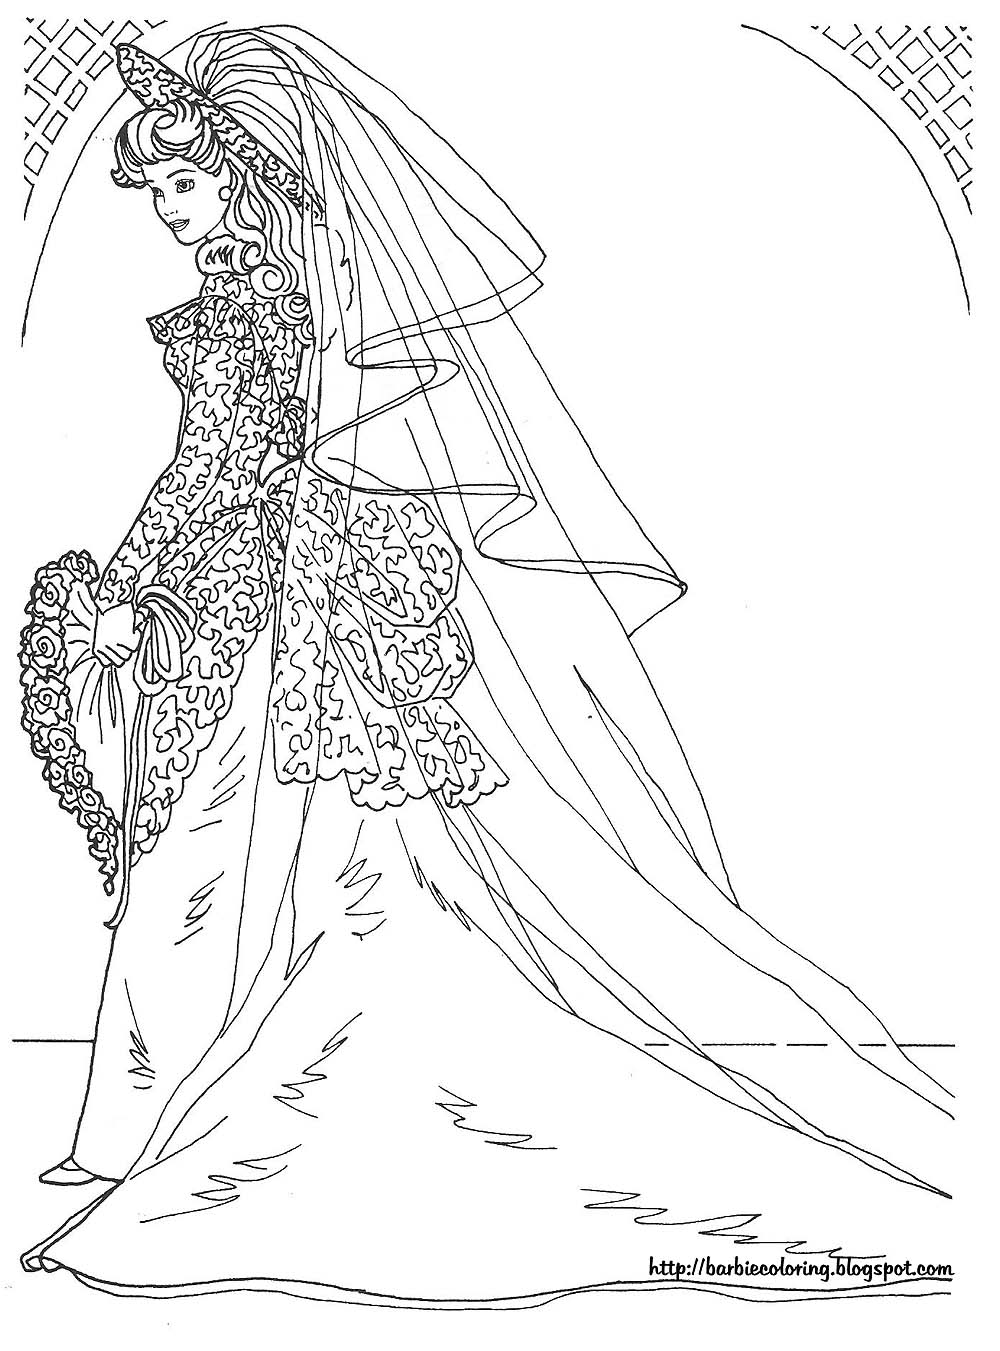 BARBIE COLORING PAGES: BARBIE AND KEN COLORING PICTURES